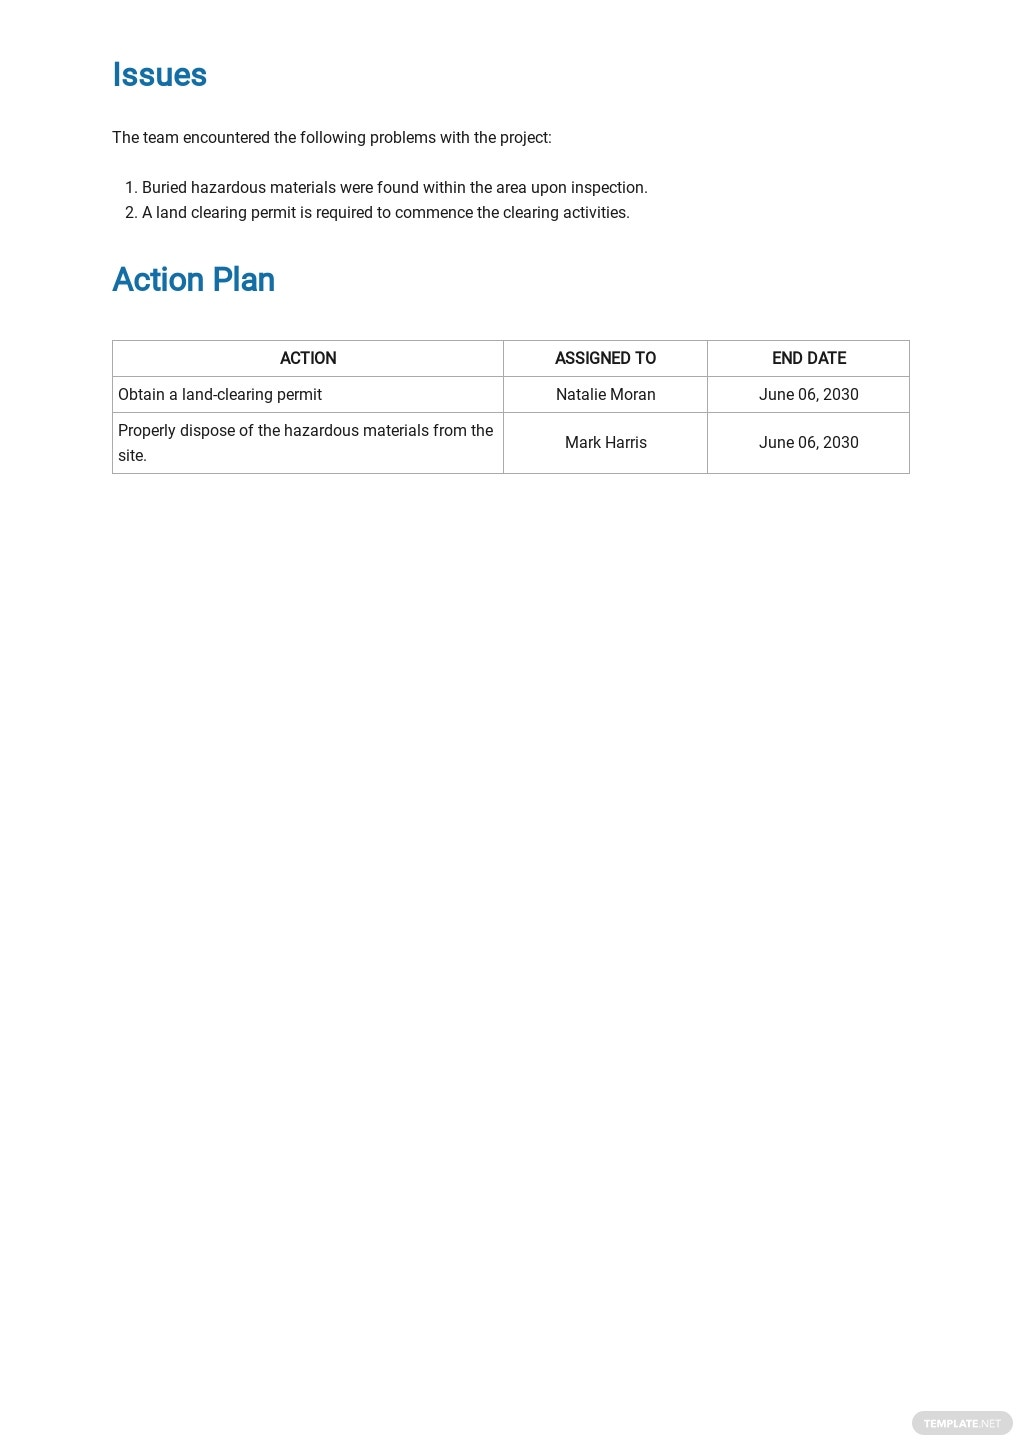 Free Daily Construction Report Sample Template 3.jpe